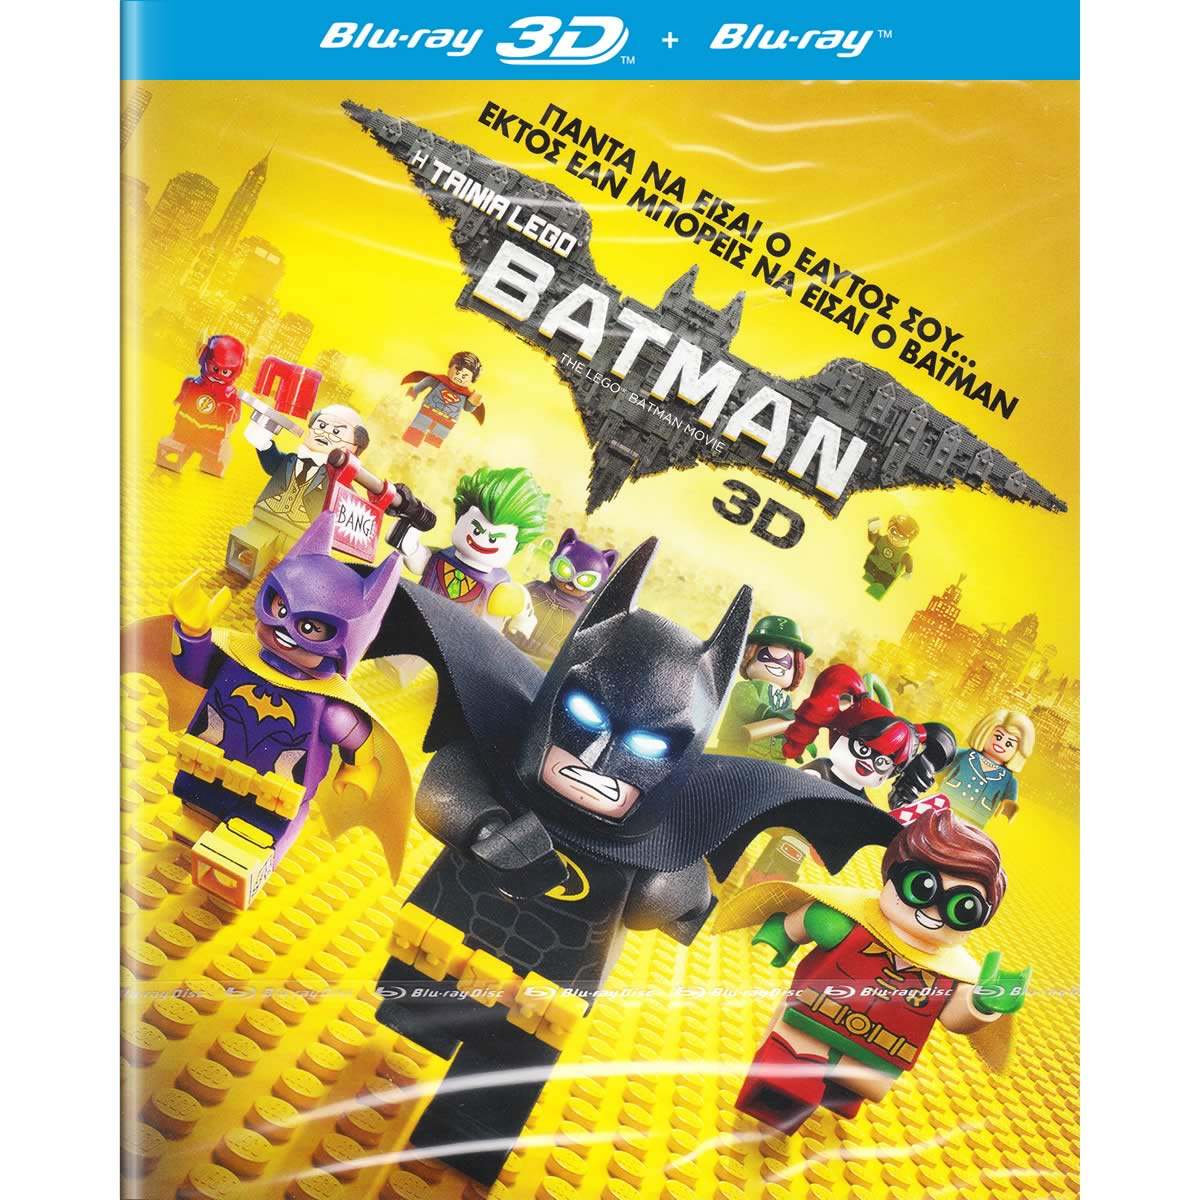 THE LEGO BATMAN MOVIE 3D (BLU-RAY 3D + BLU-RAY)